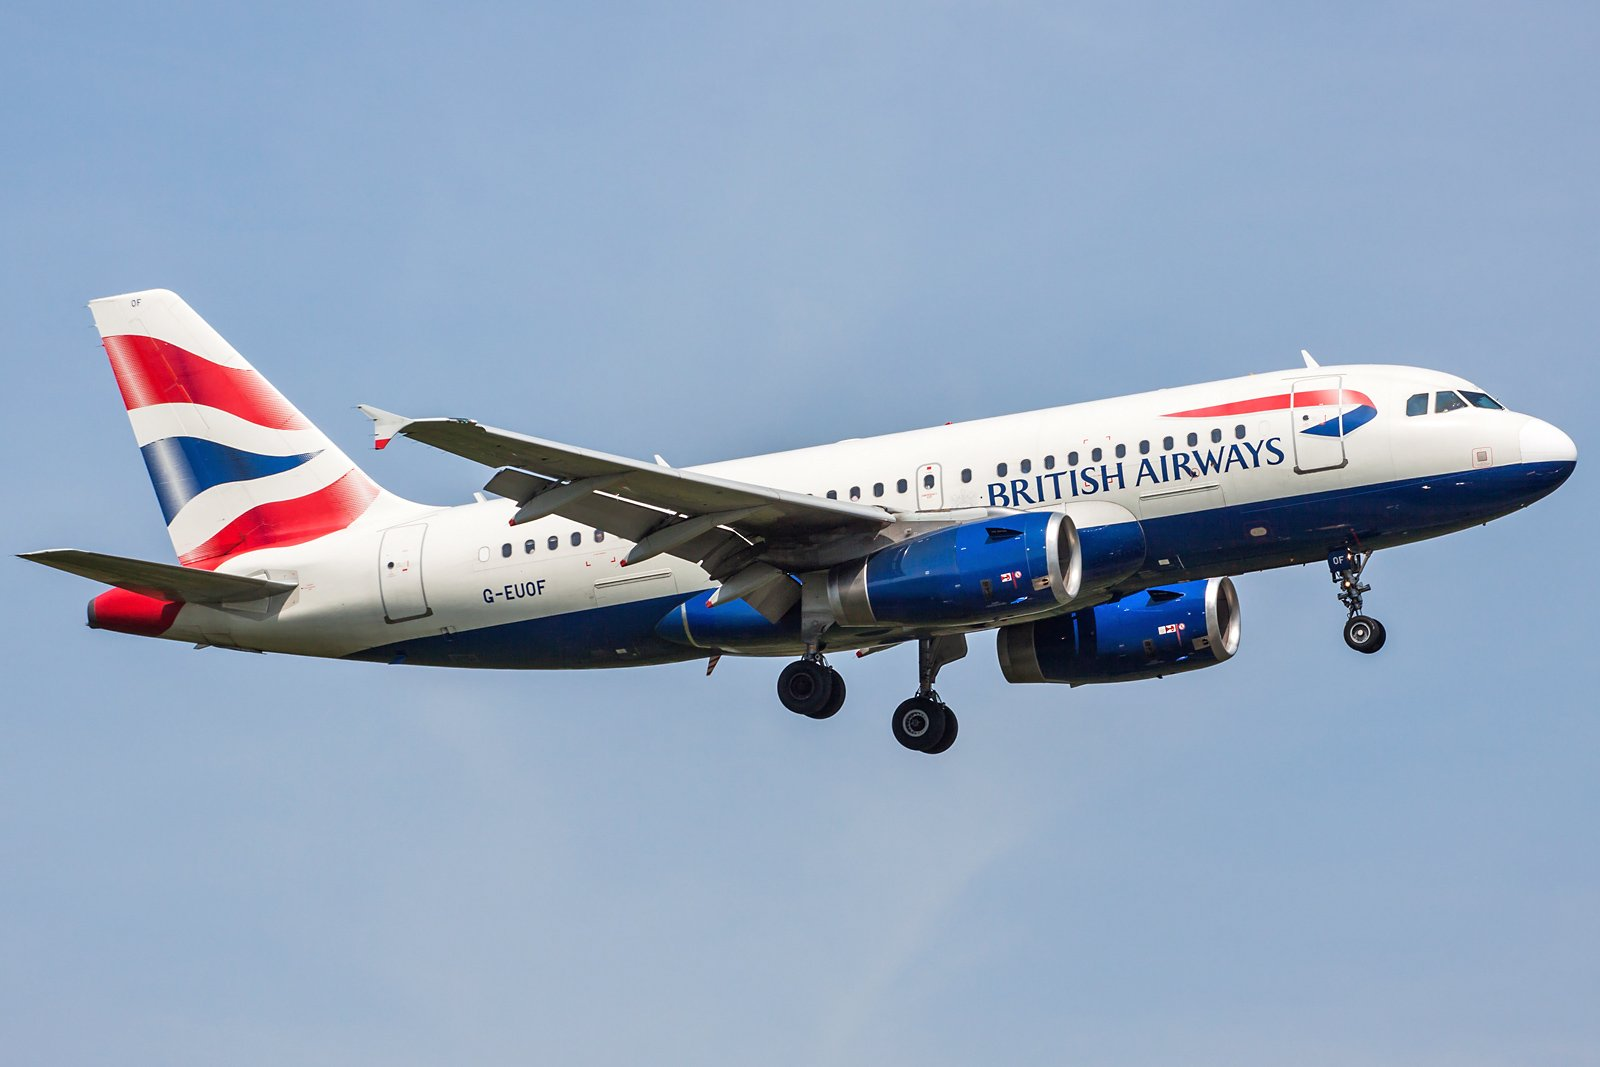 British Airways Airbus A319-131 G-EUOF